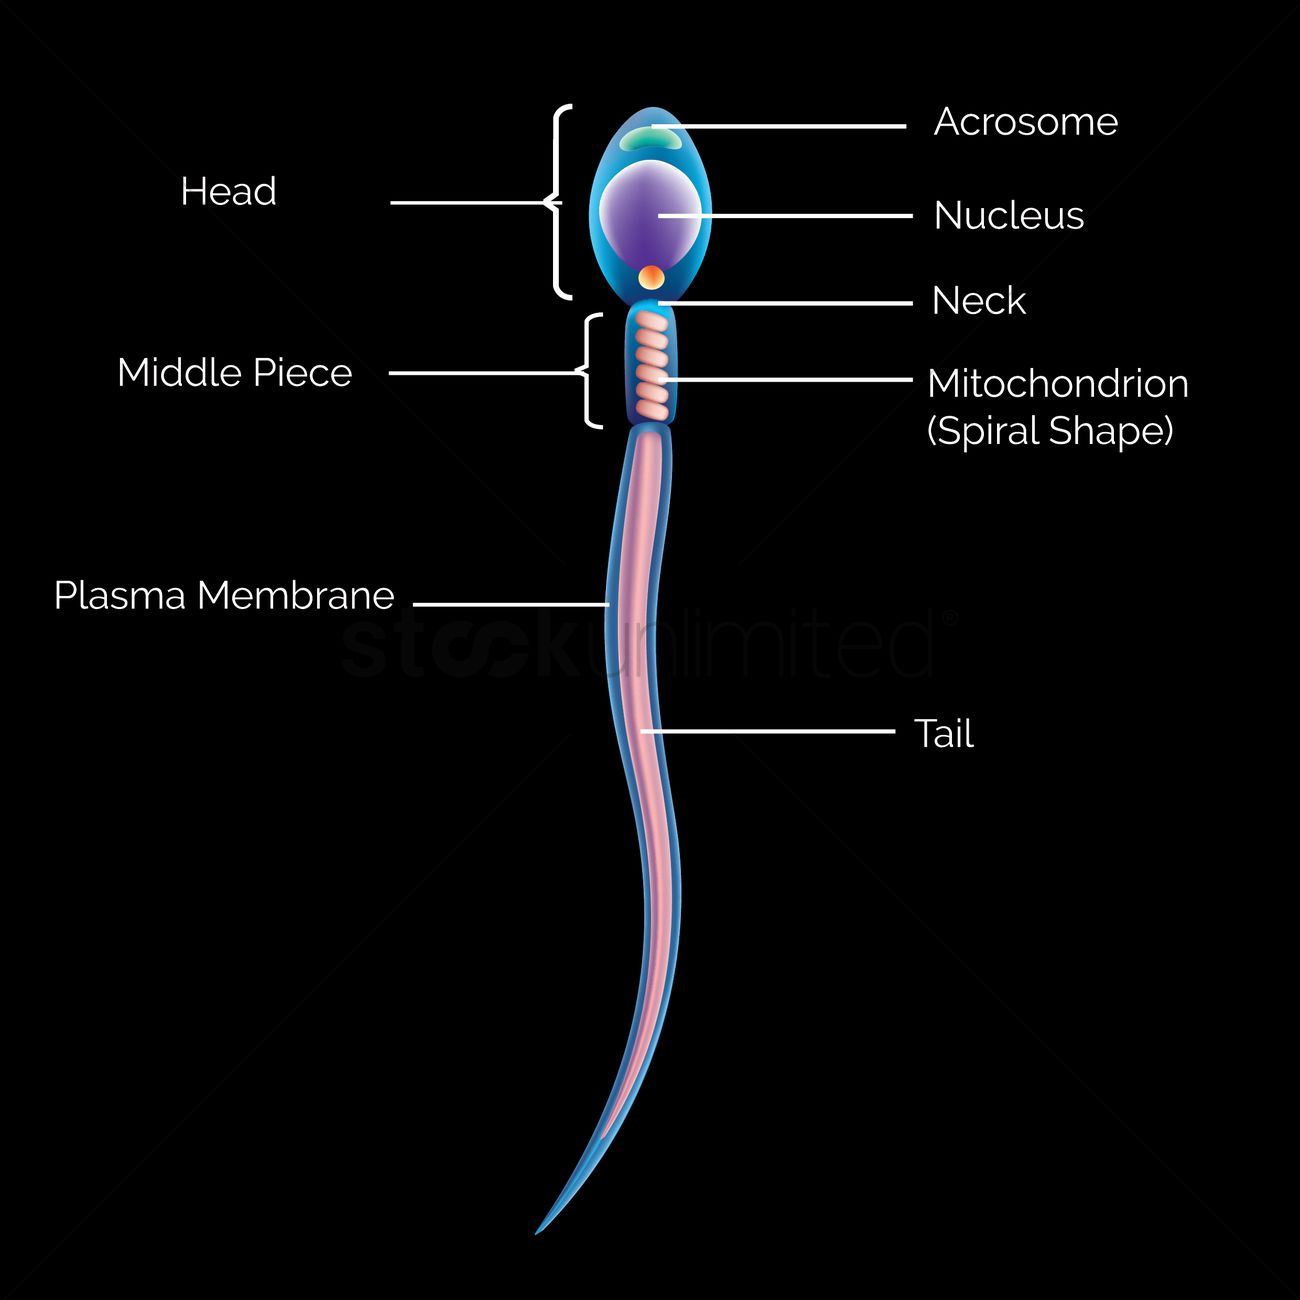 Anatomy of sperm Vector Image - 1825308 | StockUnlimited